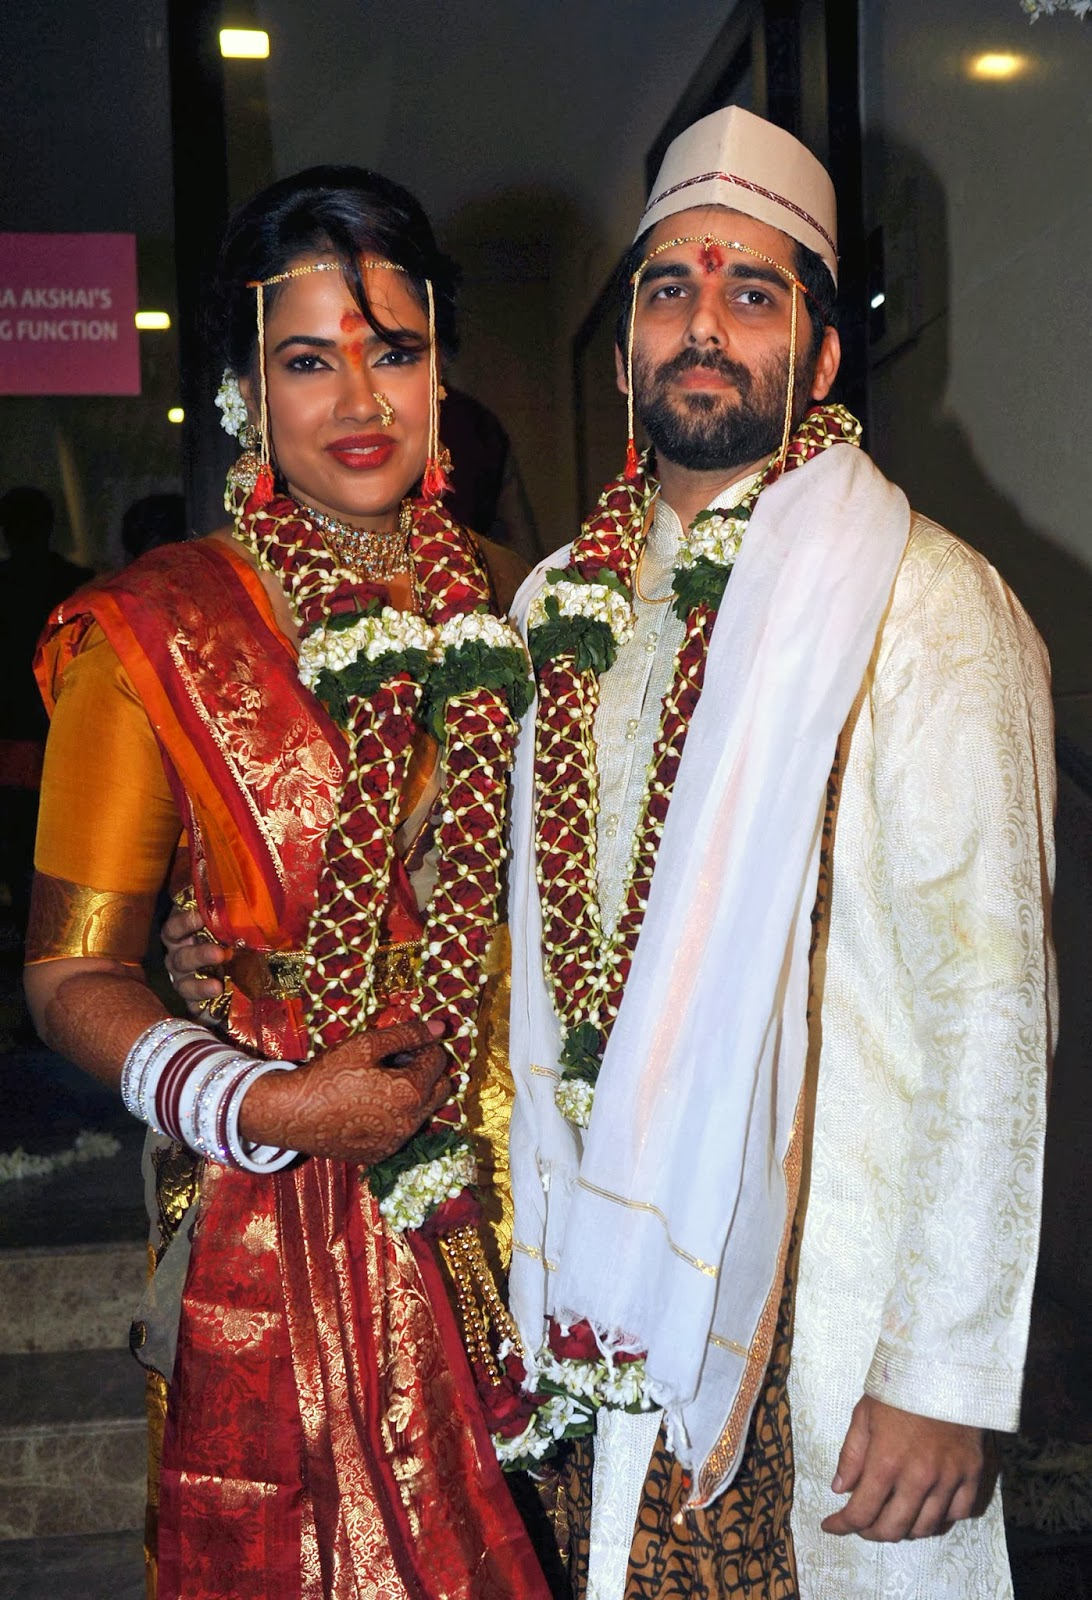 Sameera Reddy tied the knot with Mumbai-based businessman Akshai Varde